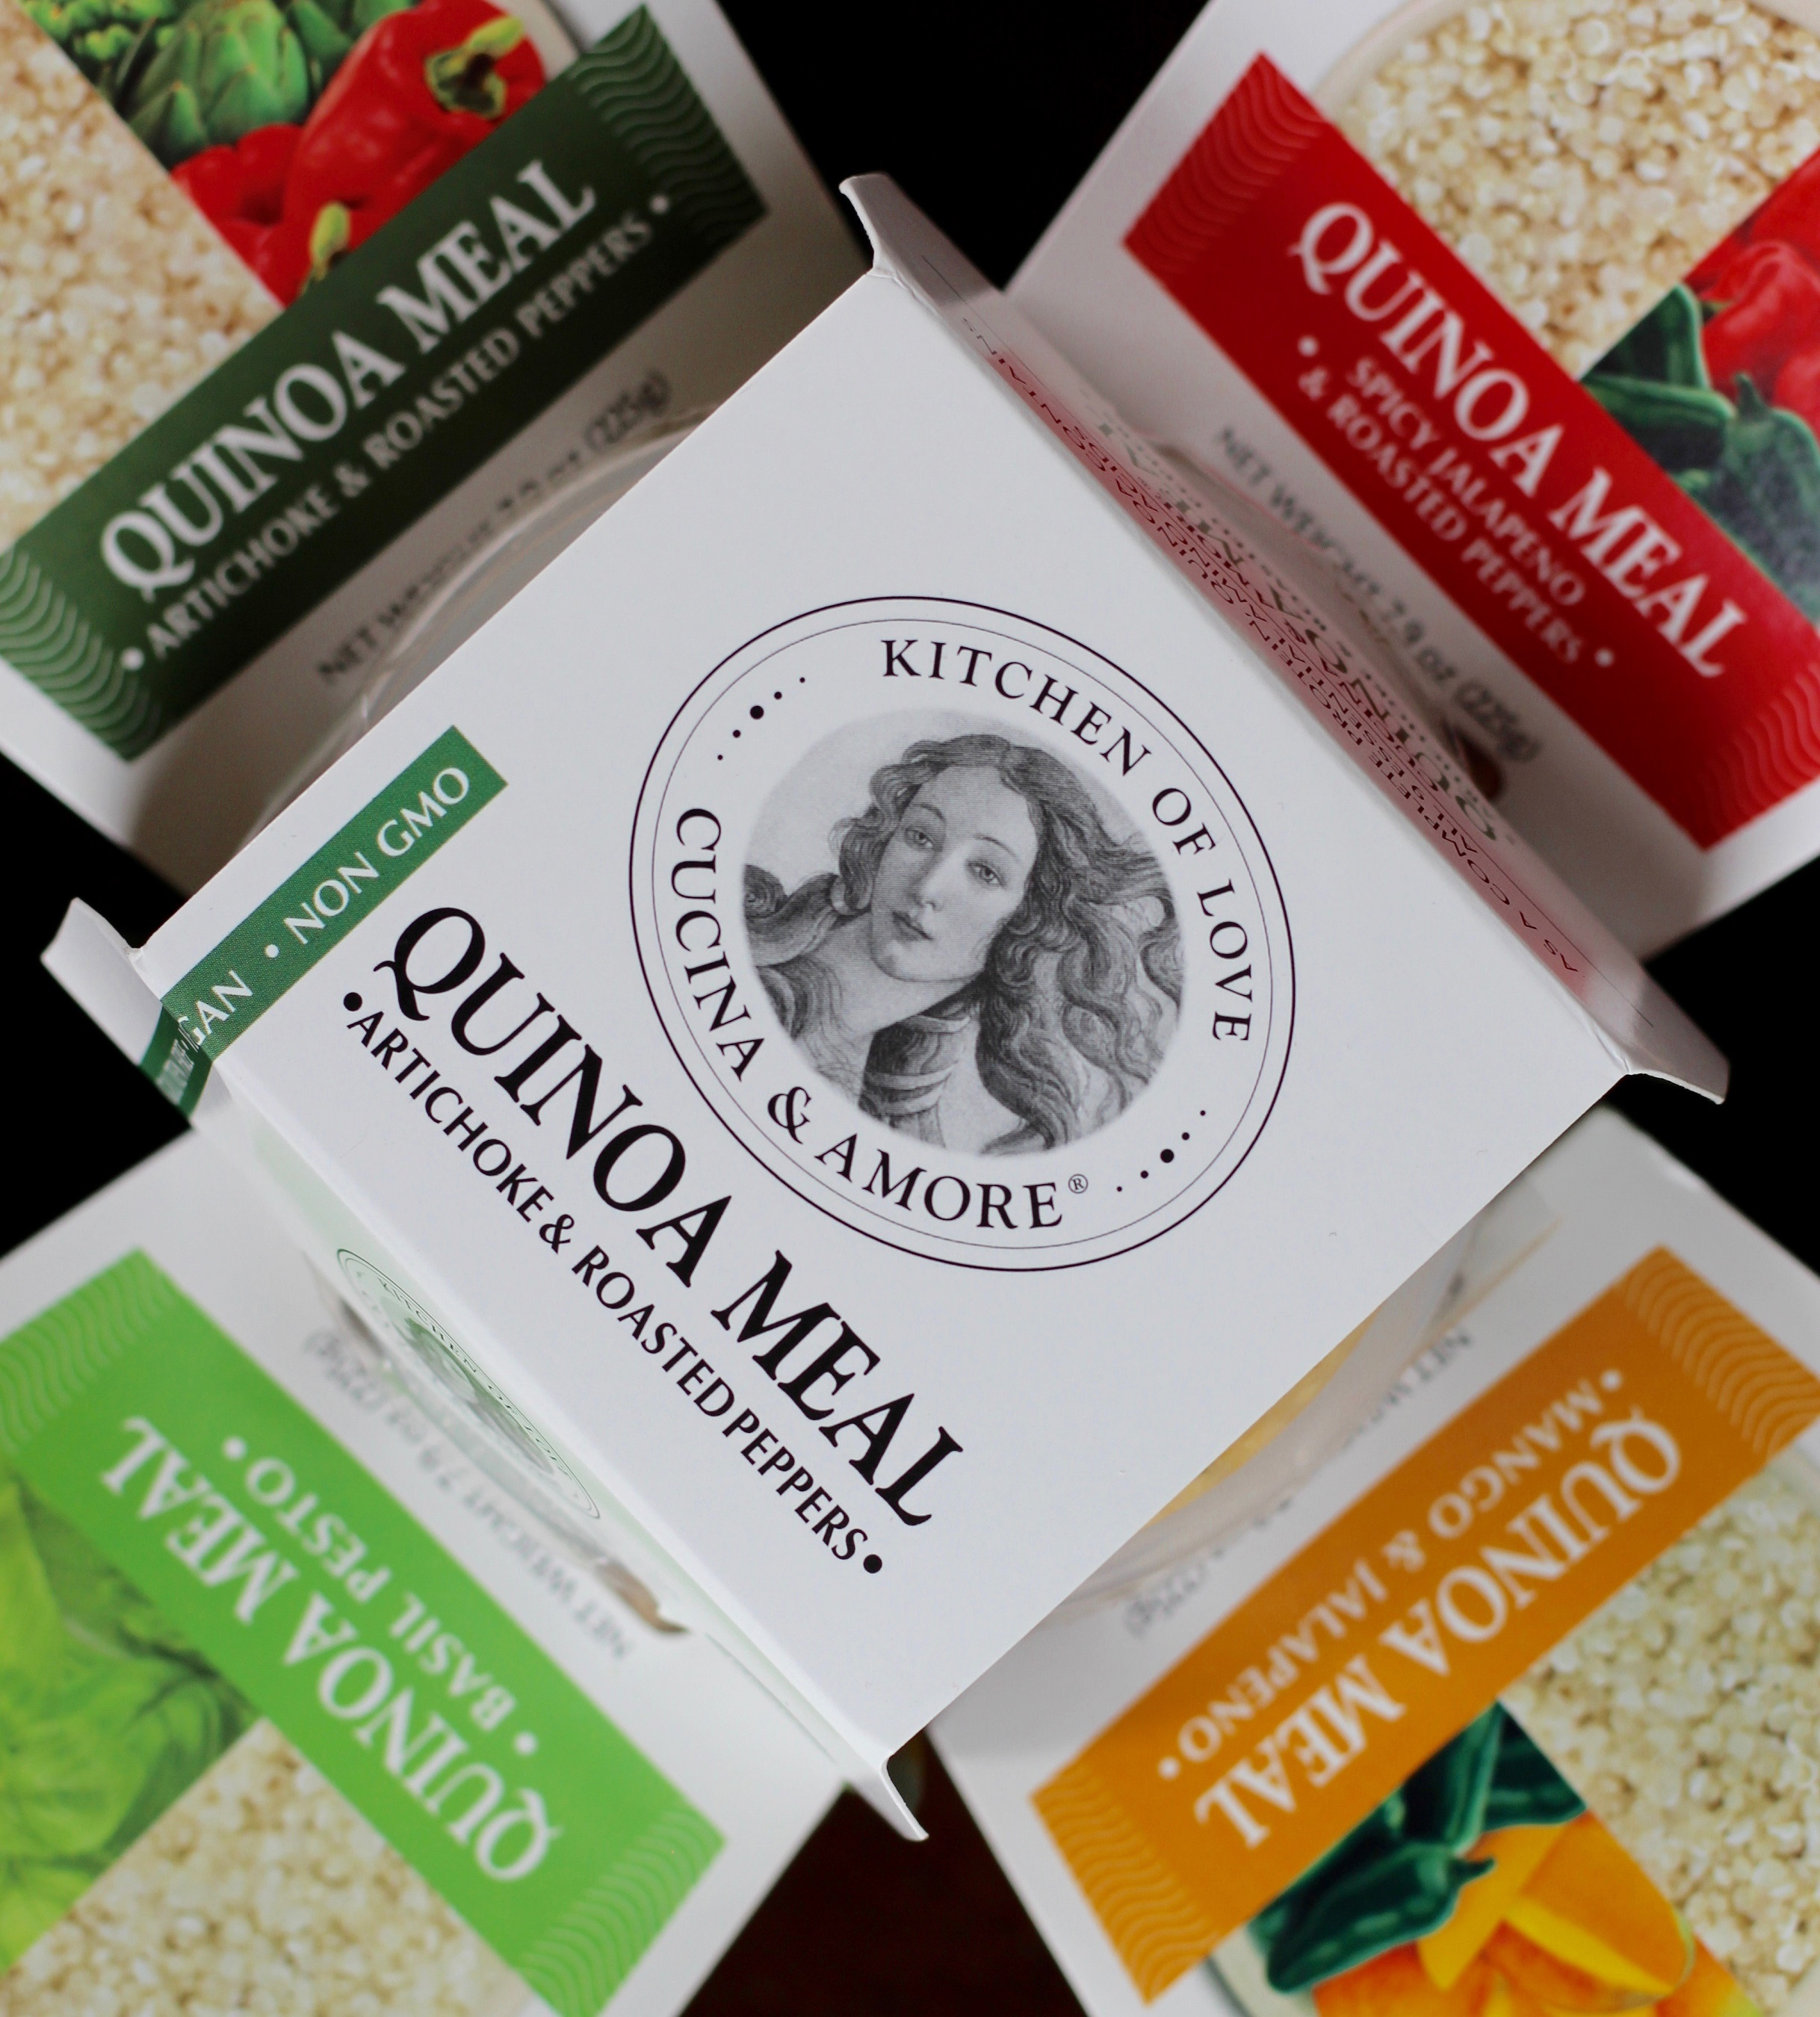 Fall in love with the Kitchen of Love, Cucina & Amore Quinoa Meals ...